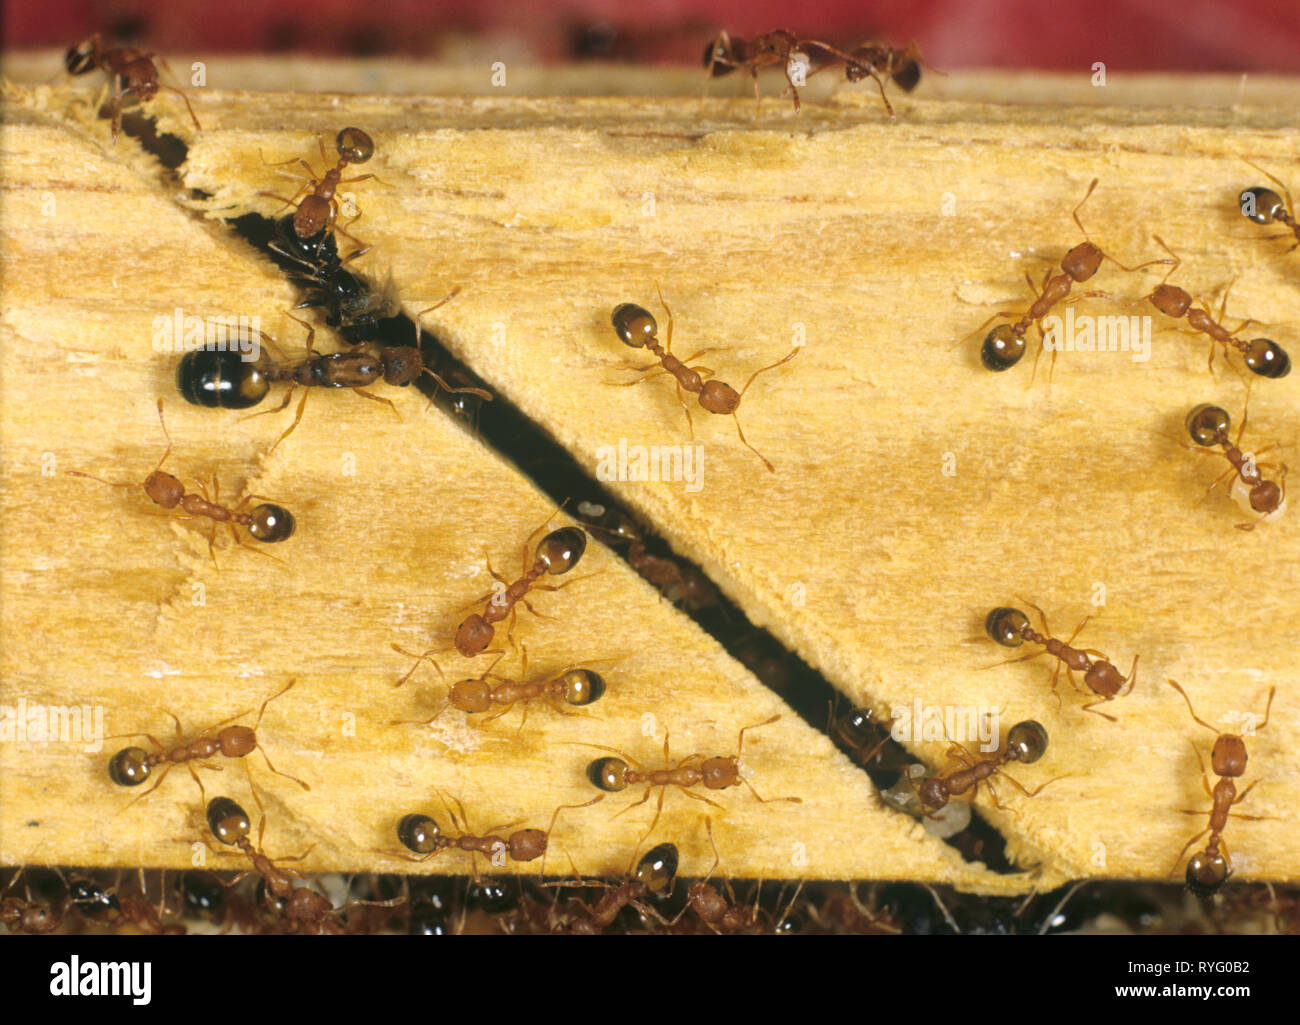 Pharaoh's ants (Monomorium pharaonis) with workers, queen and larvae - Stock Image